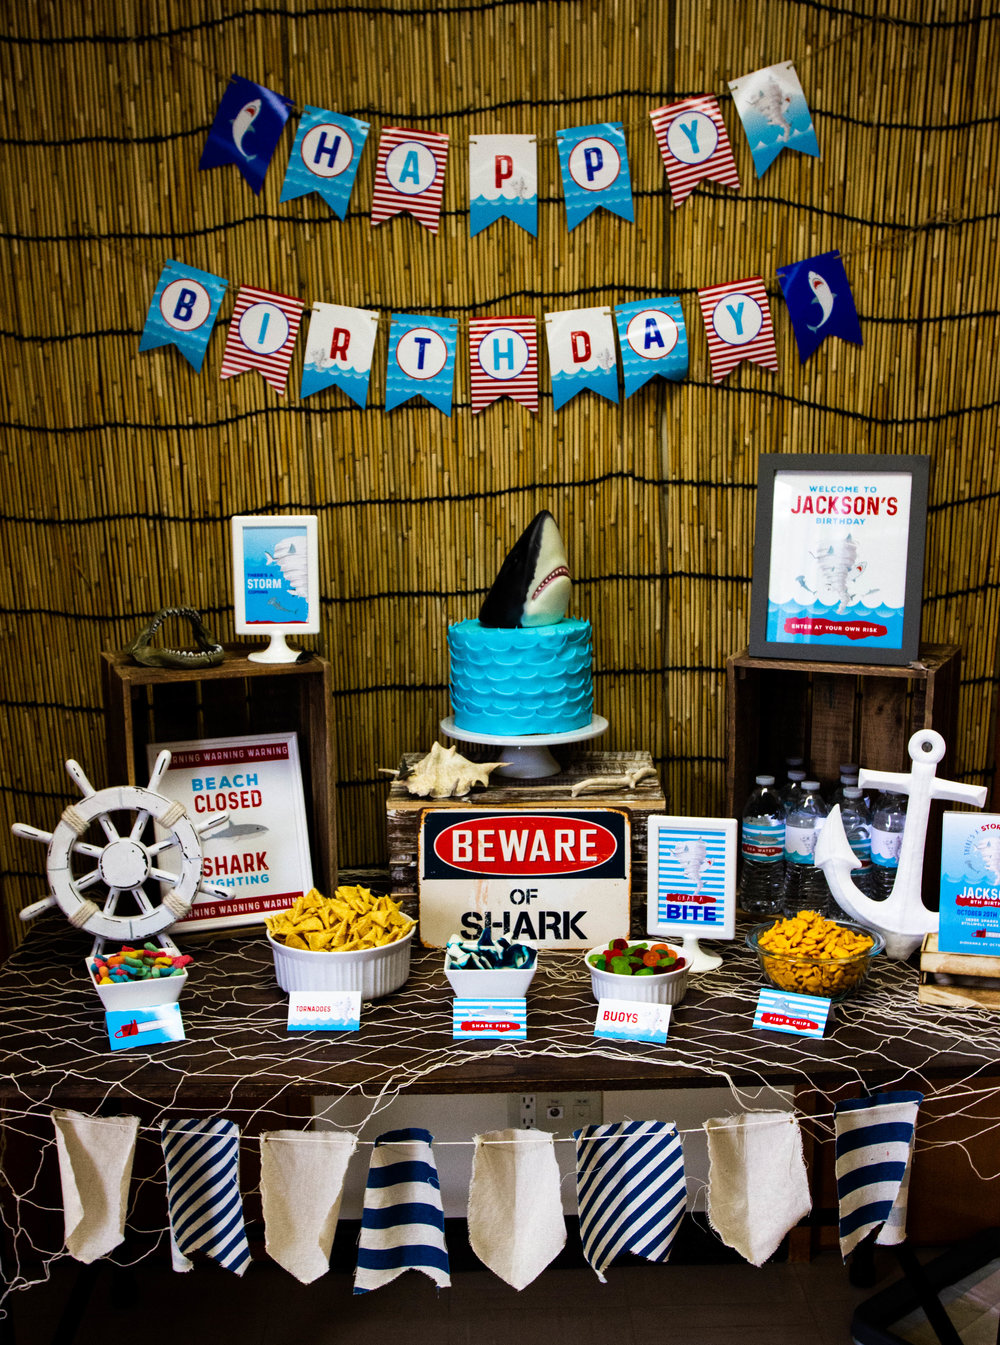 Sharknado Birthday Party theme - Boy Birthday Party Ideas // mkkm designs